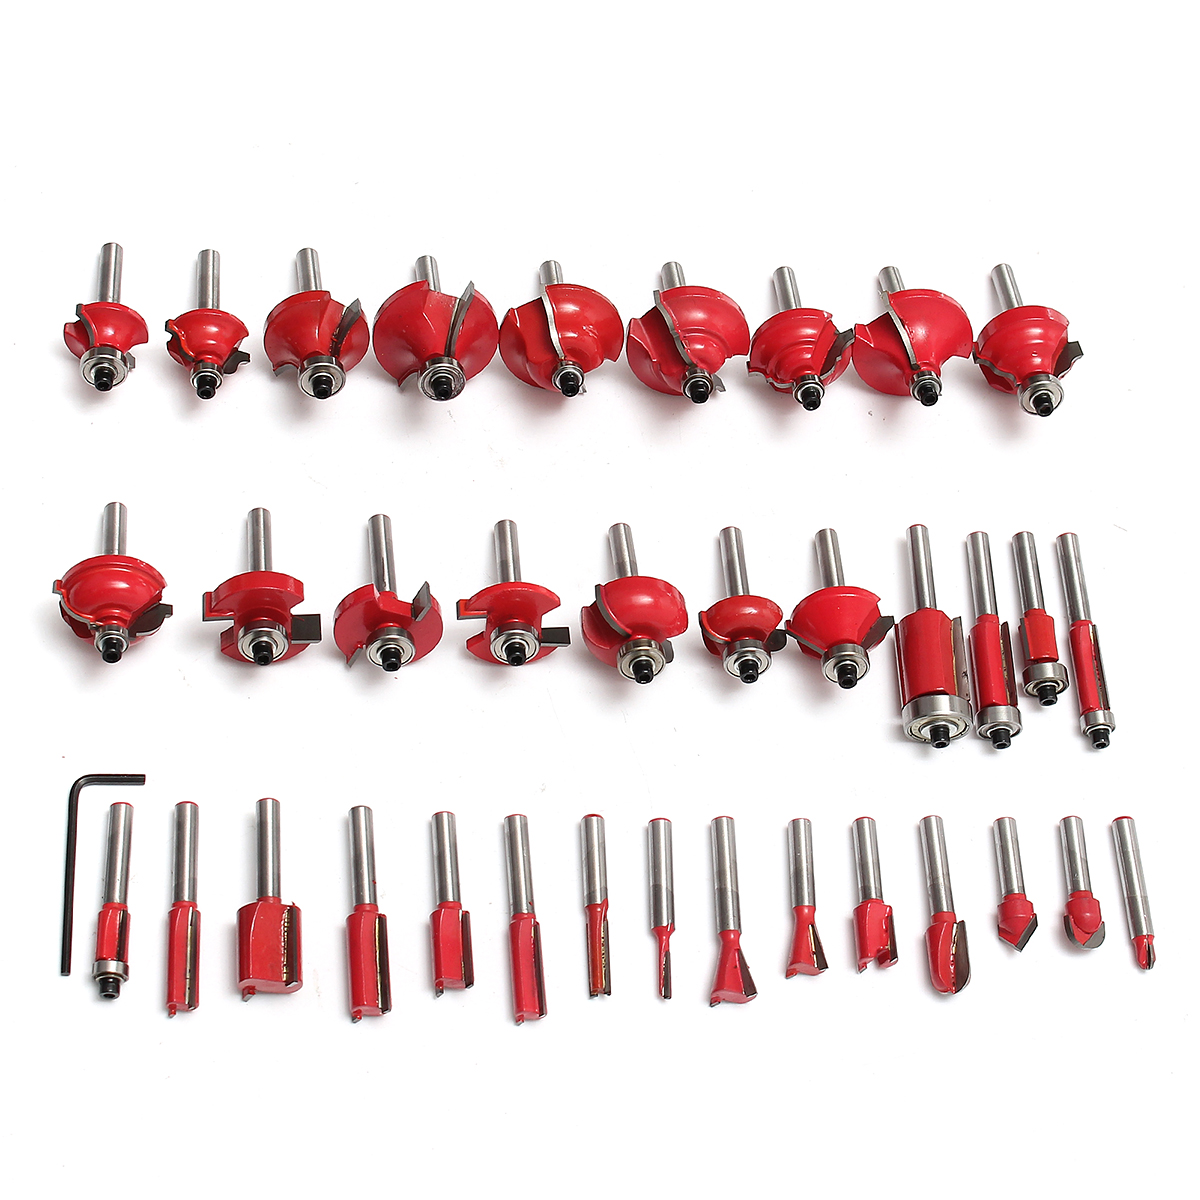 35pcs 1/4 Inch Shank Tungsten Carbide Tip Router Bit Set Wood Working Tool